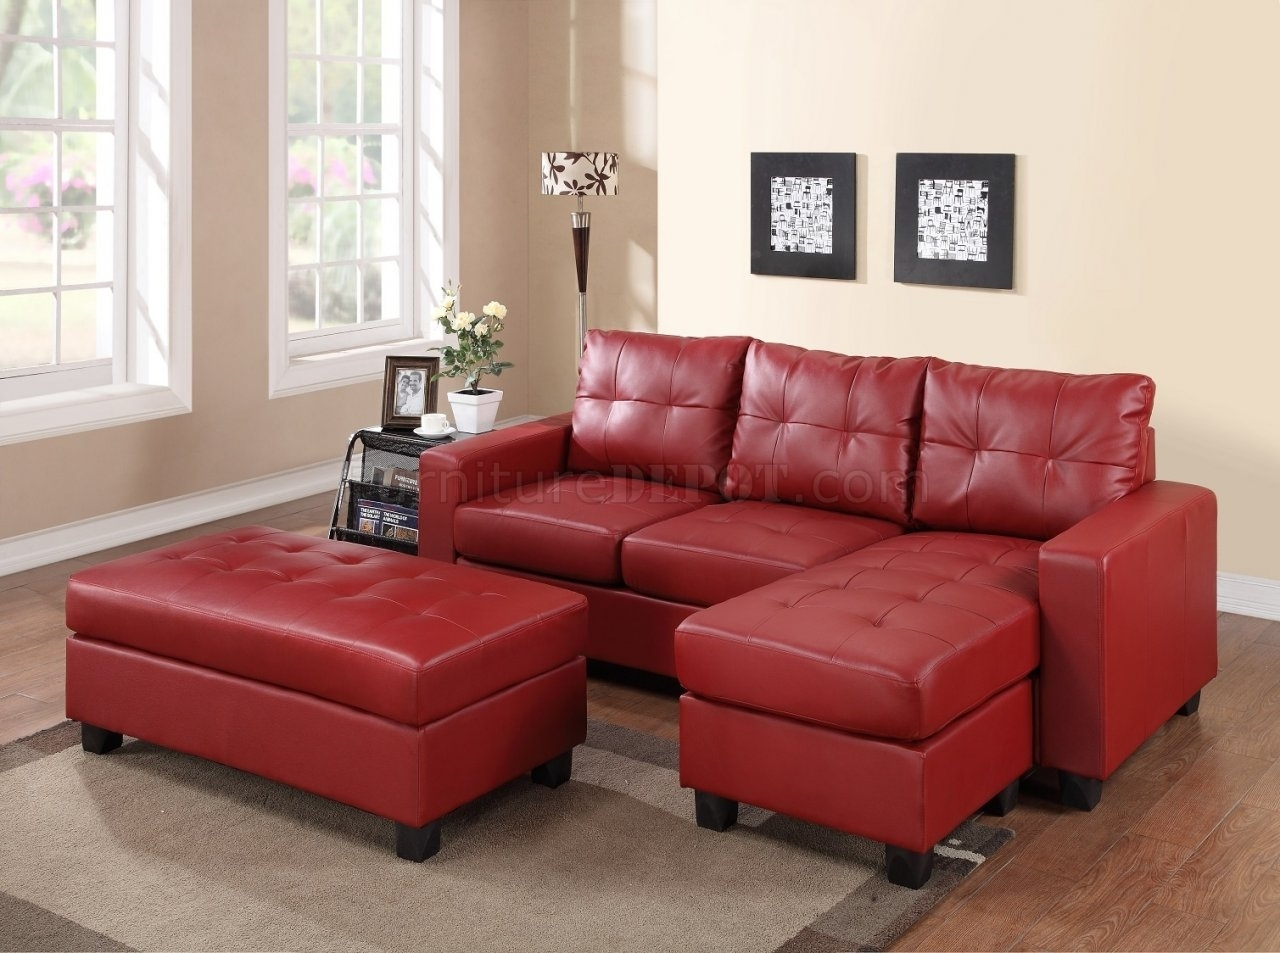 2511 Sectional Sofa Set In Red Bonded Leather Match Pu With Regard To Red Sectional Sofas (View 6 of 10)